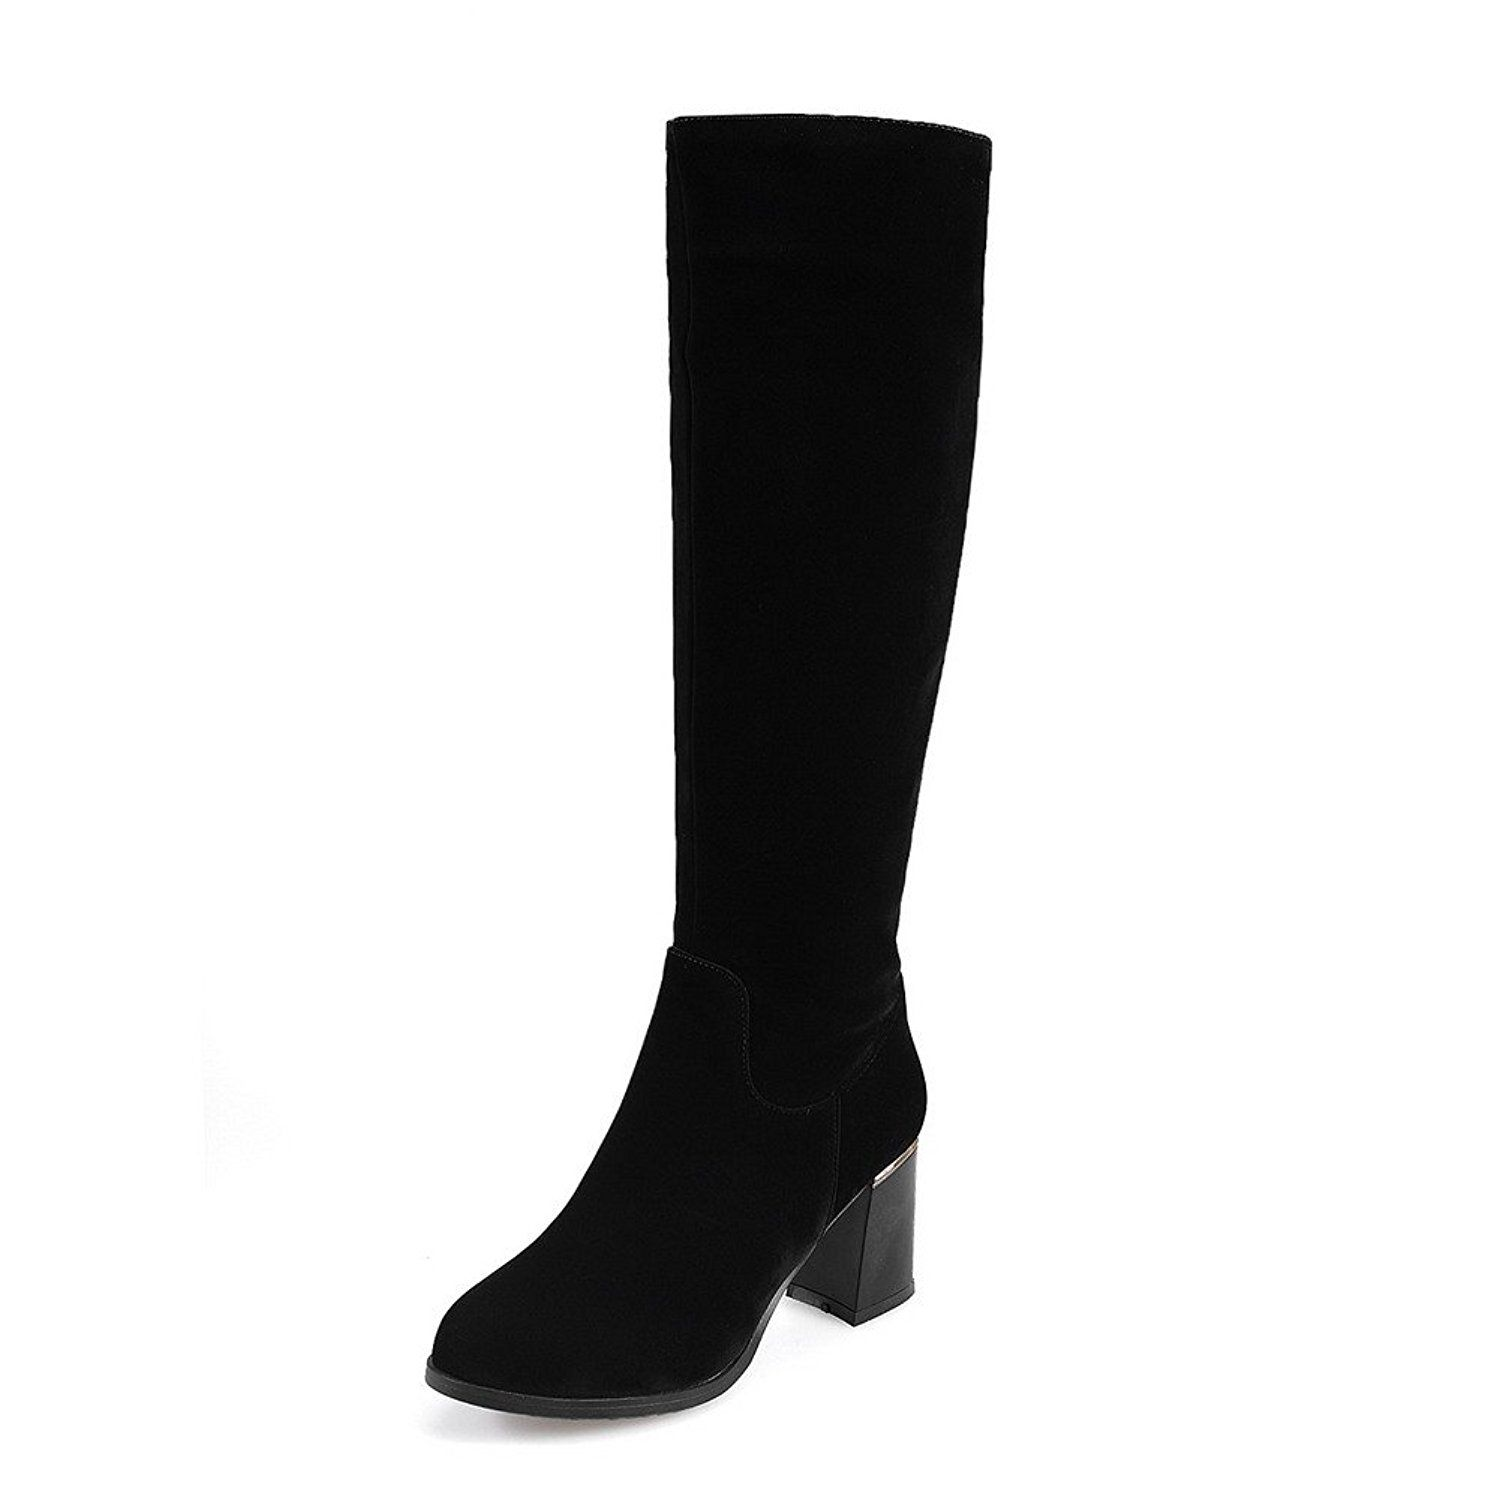 Maymeenth Women S Kitten Heels Frosted Solid Boots With Glass Diamond And Rubber Soles Details Can Be Found Kitten Heel Boots Womens Knee High Boots Boots